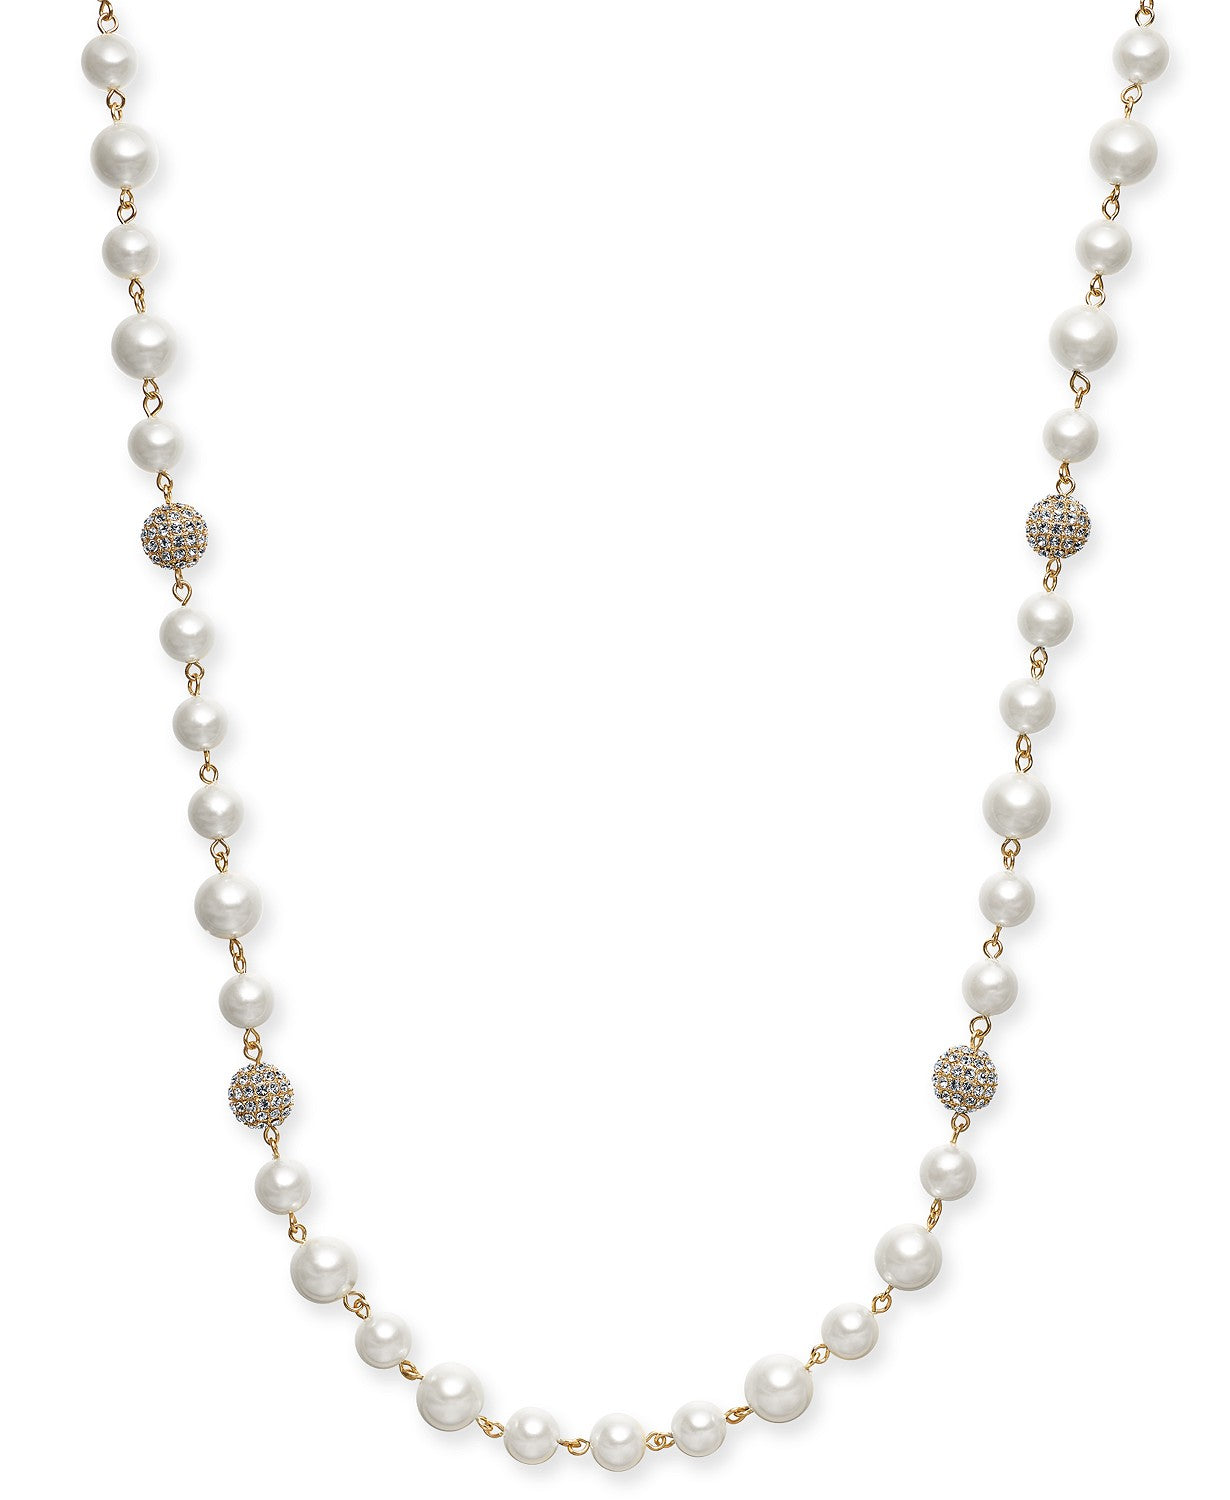 "Charter Club Gold-Tone Pavé Bead & Imitation Pearl Strand Necklace, 42"" + 2"" extender"